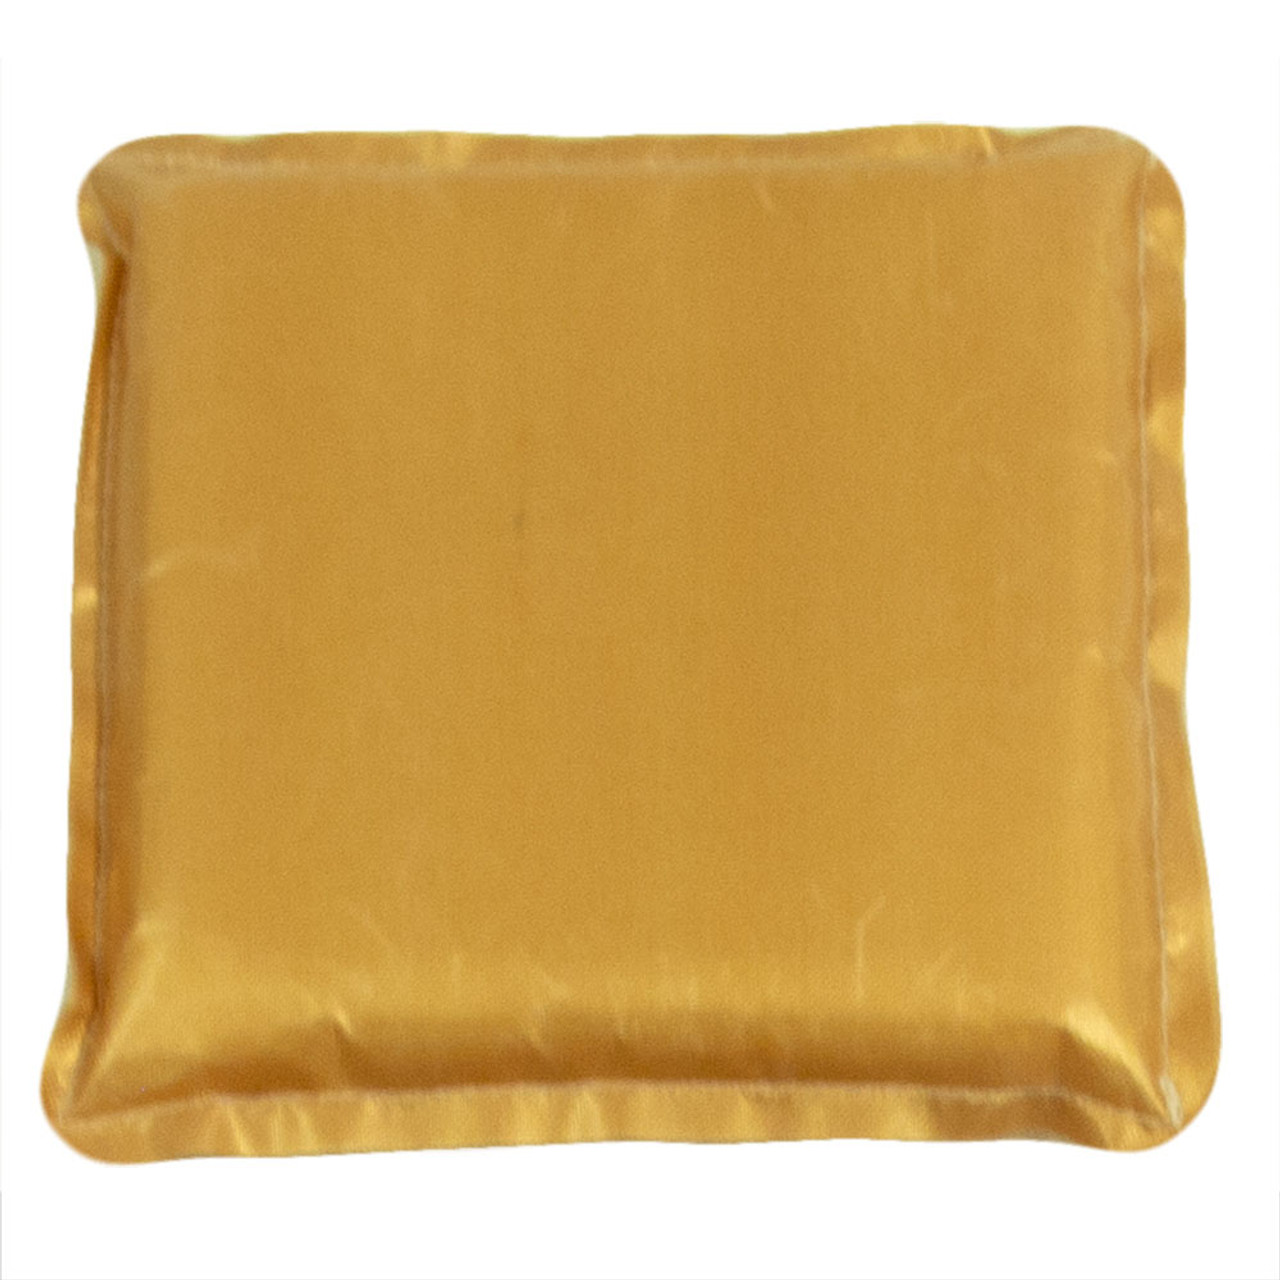 ptfe heat transfer application pillow various sizes available